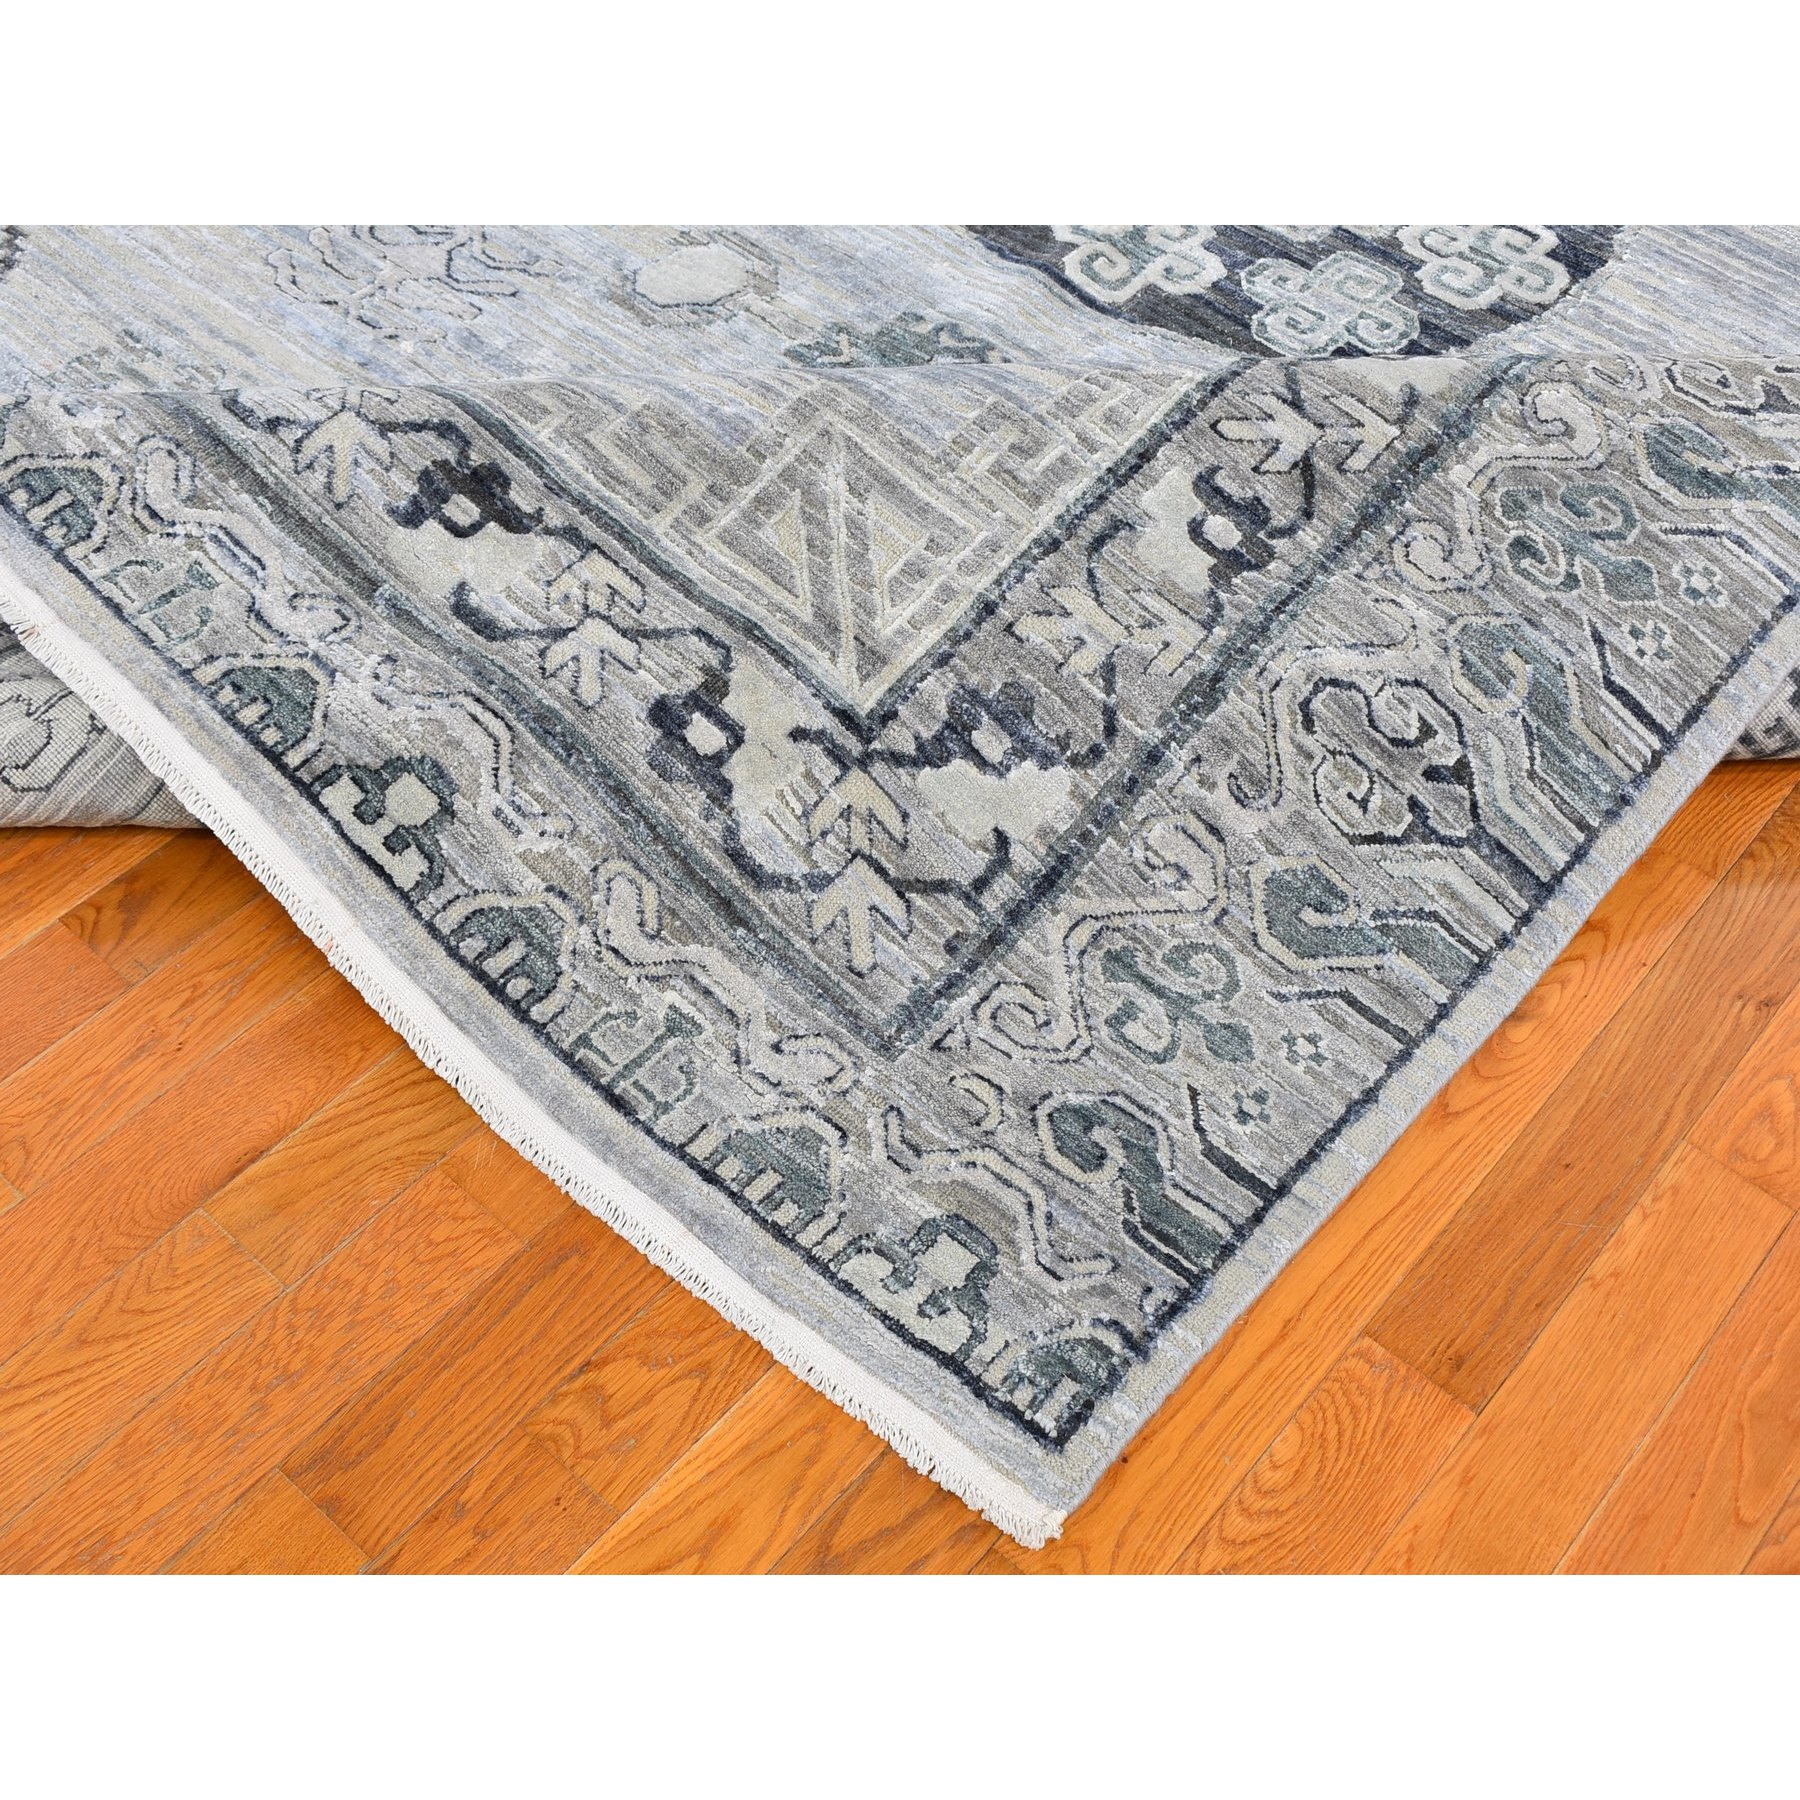 "8'10""x12'1"" Pure Silk with Textured Wool Khotan Design Hand Knotted Oriental Rug"